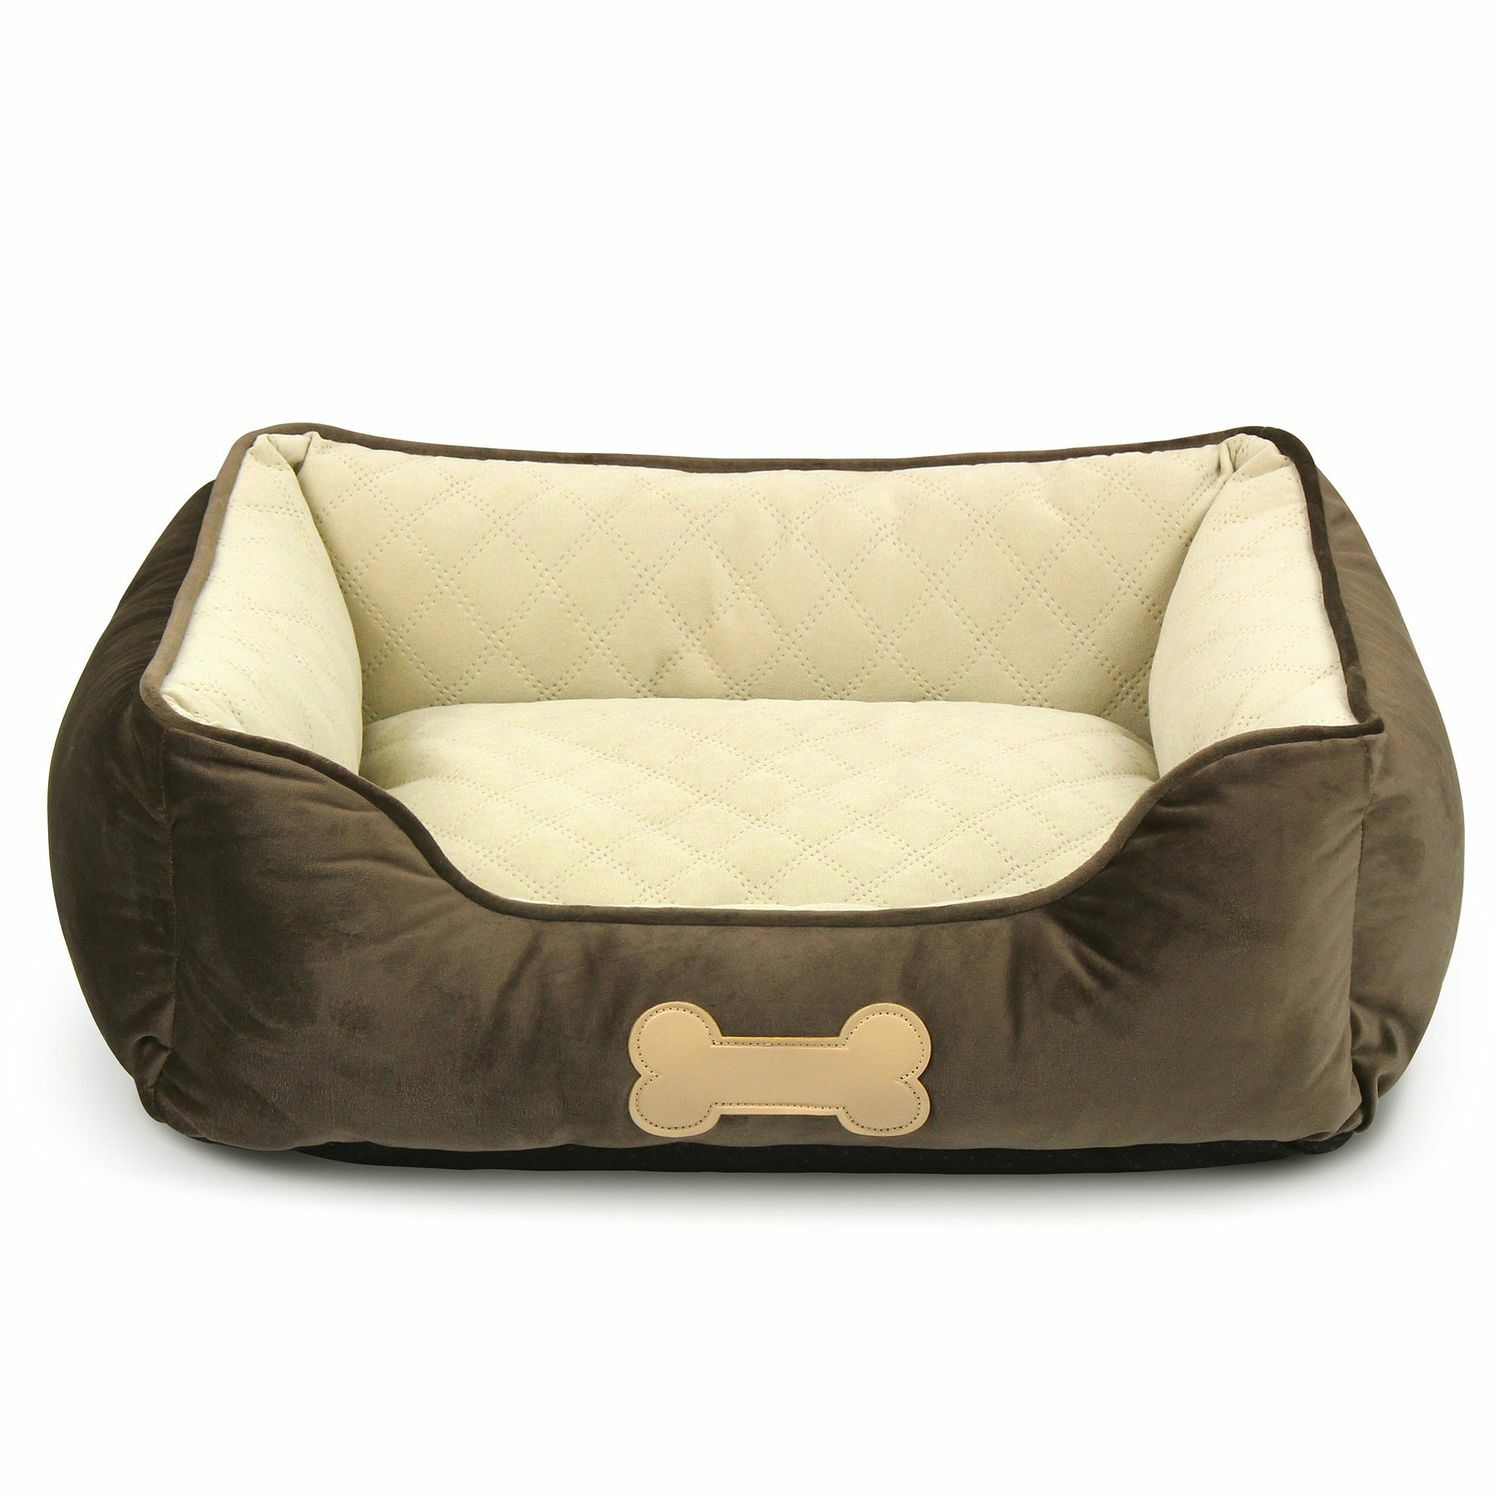 Dunsmuir Pet Lounger Bed Bolster with Super Soft Padding Size: 8